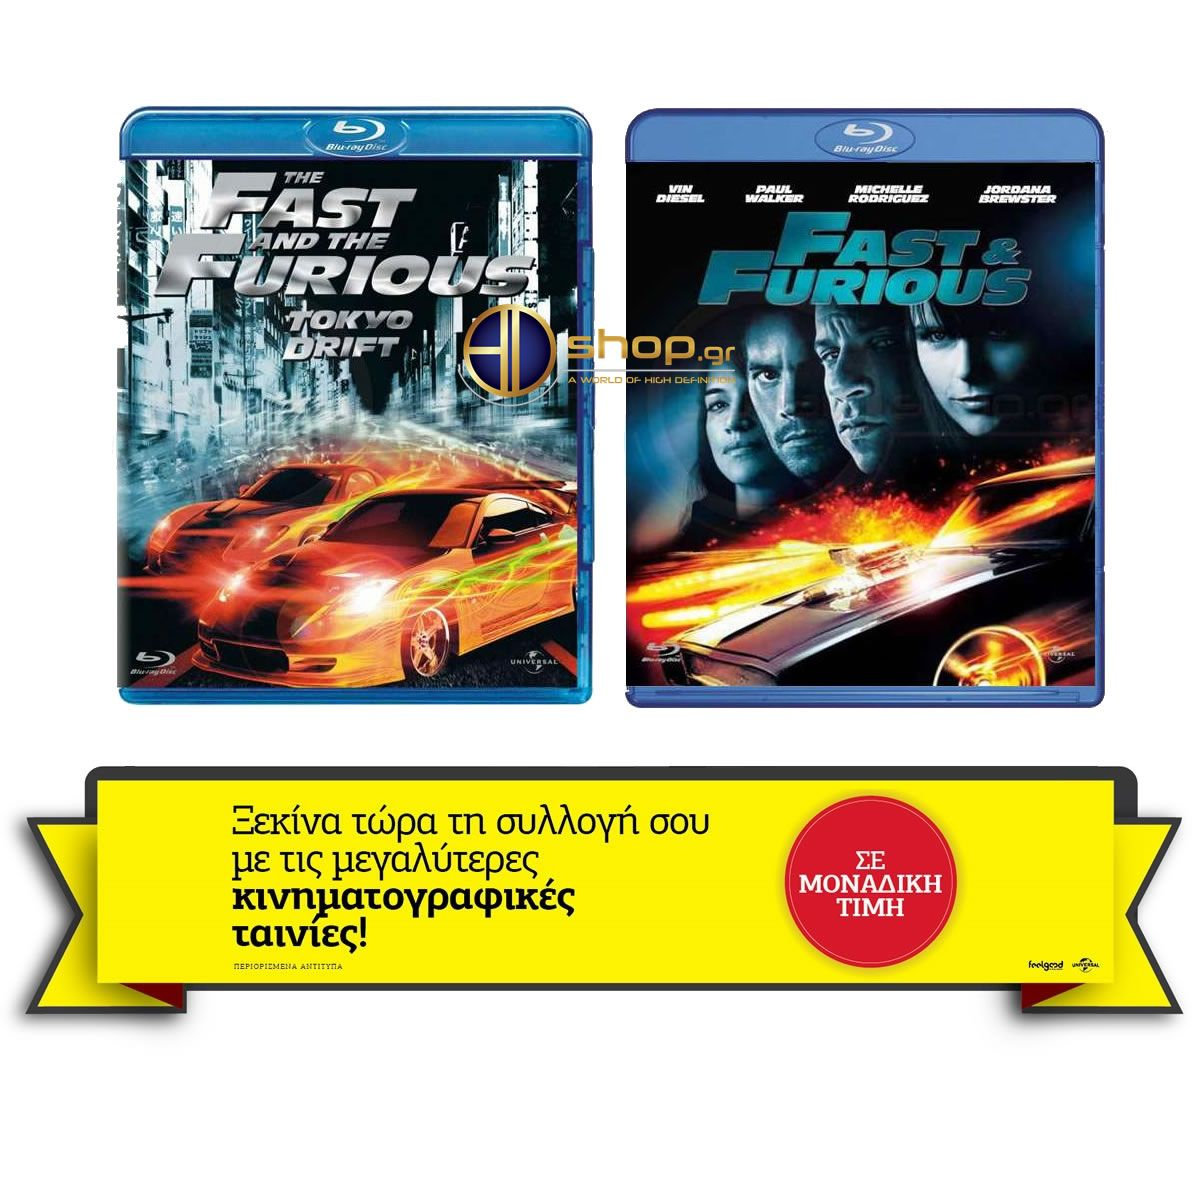 THE FAST AND FURIOUS 3 TOKYO DRIFT 4 Double Pack 2 BLU RAYs